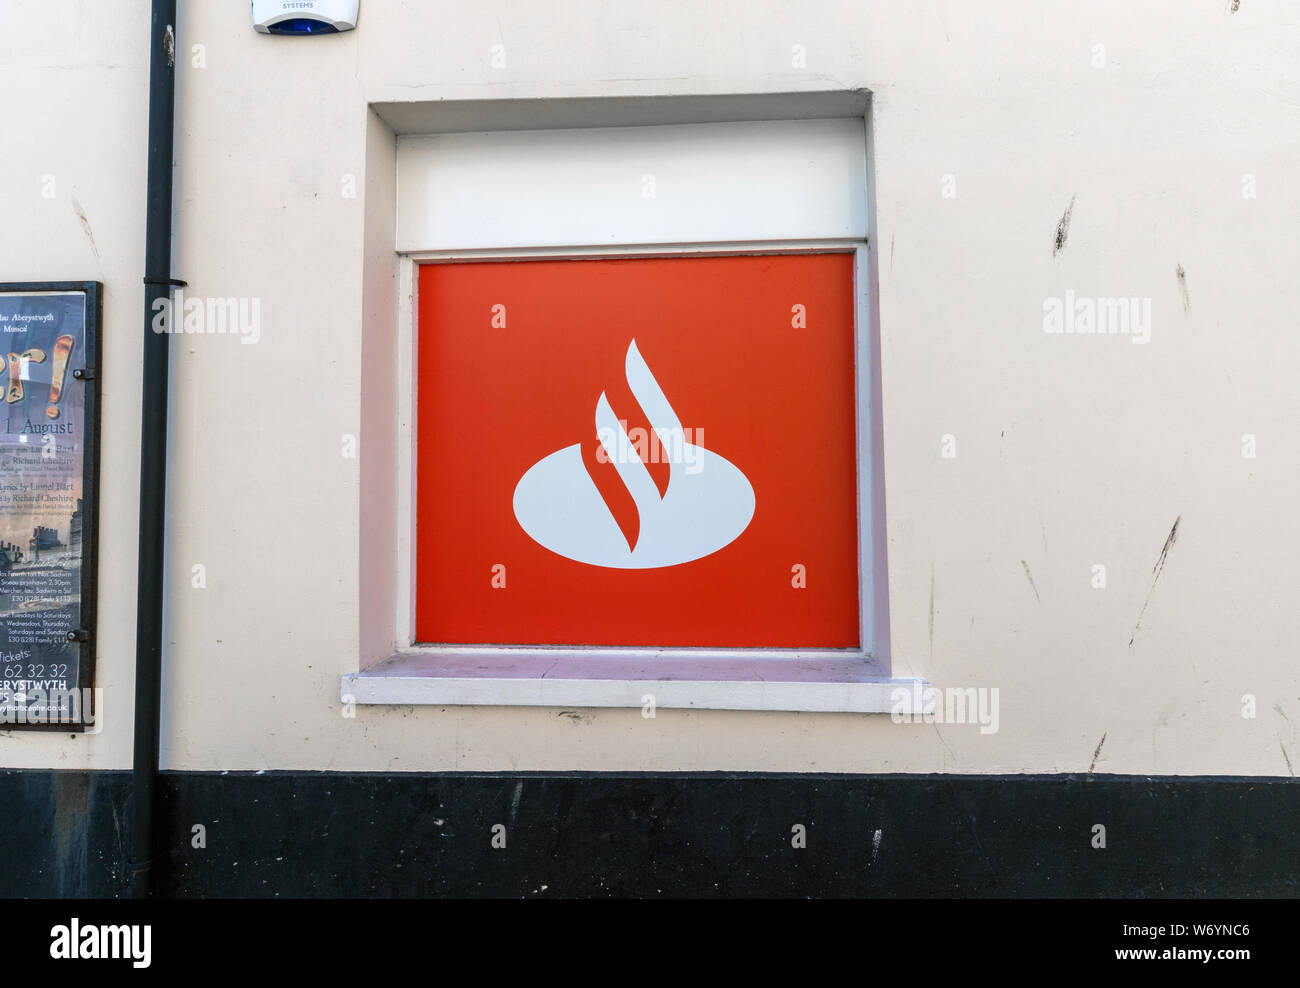 Santander Logo High Resolution Stock Photography And Images Alamy